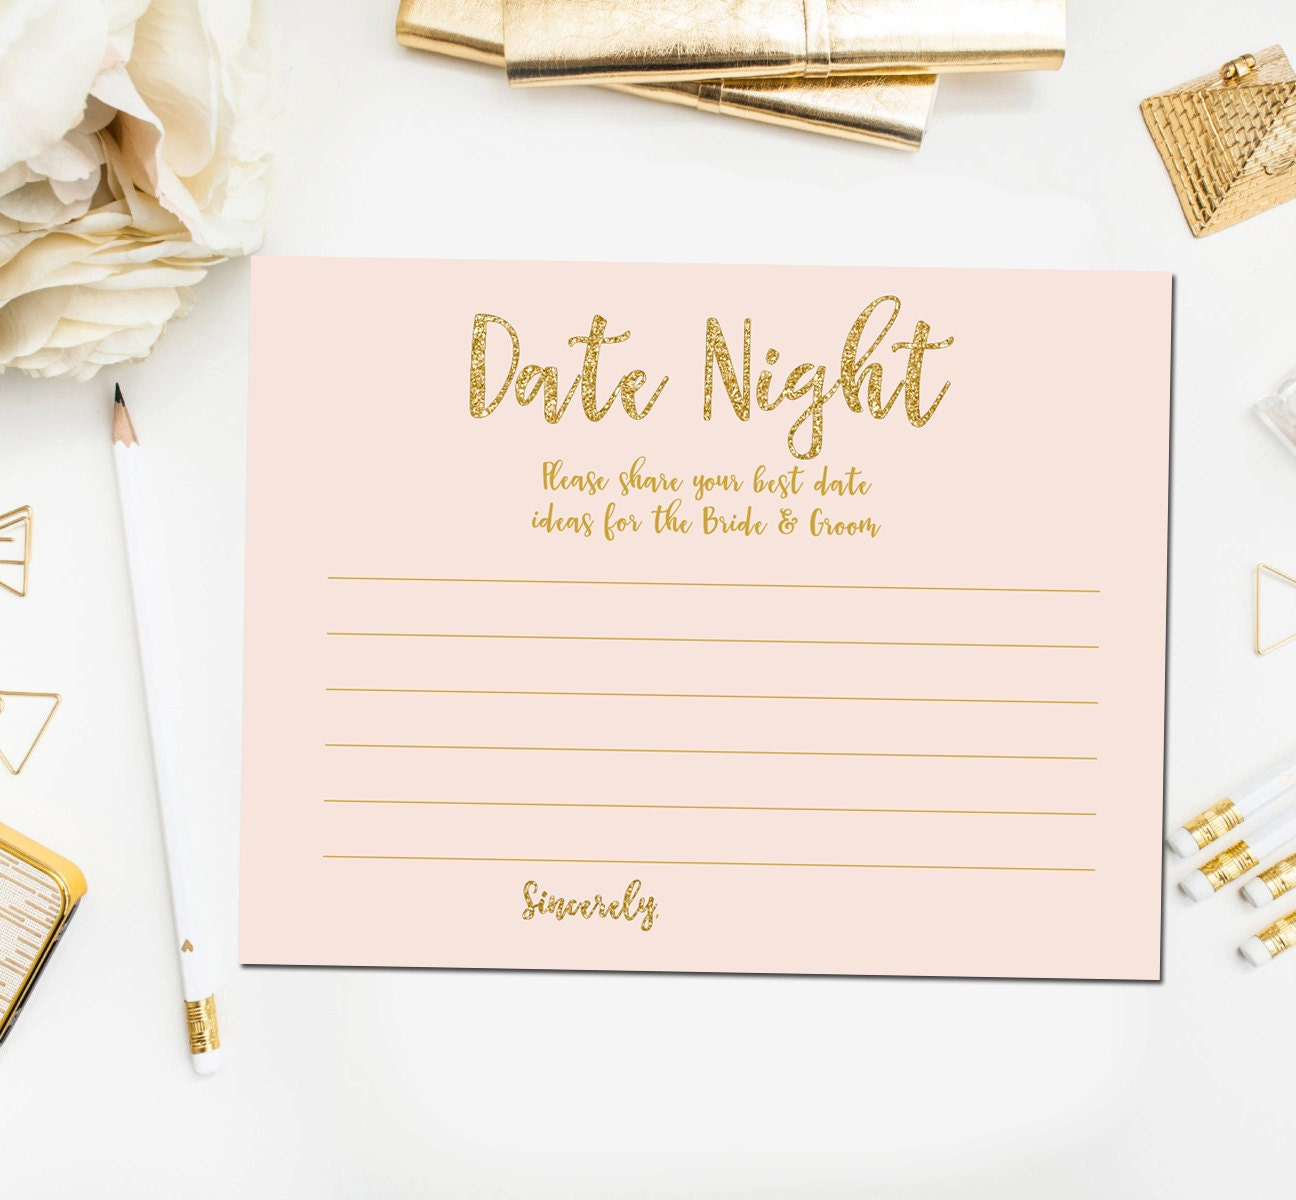 pics 50 Date Night Ideas for Newlyweds